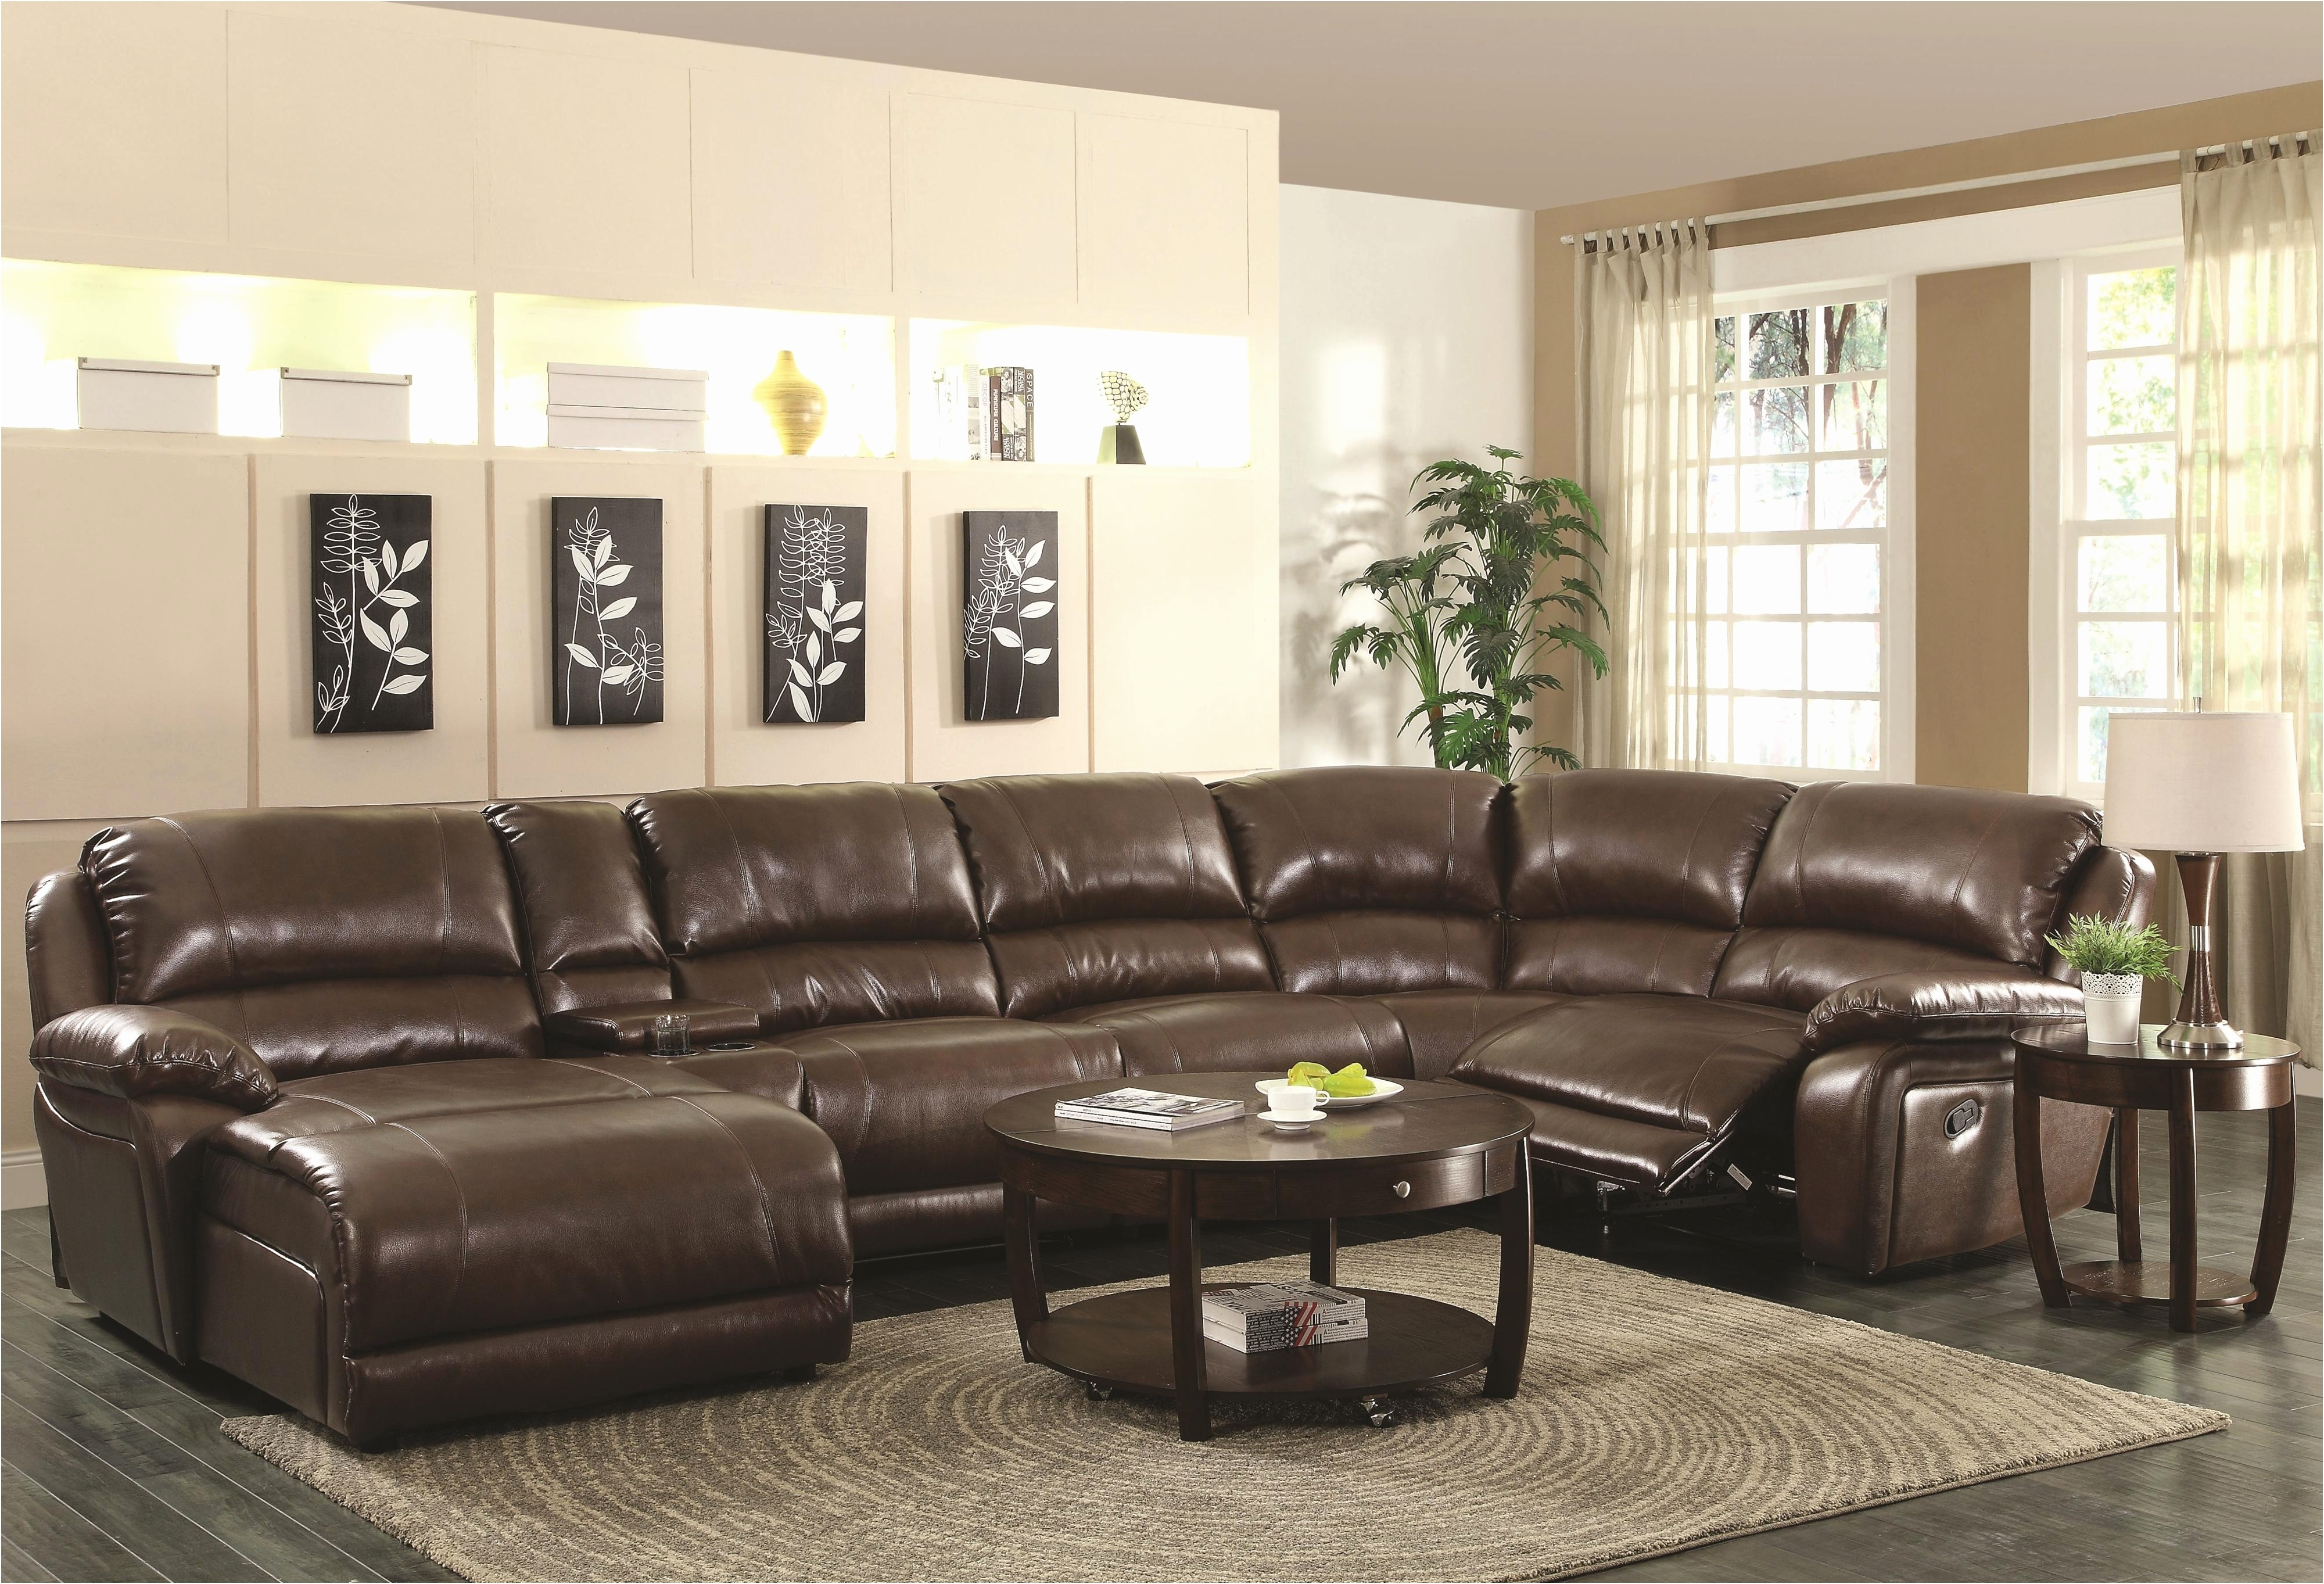 Sectional Sofas Leather Elegant Delighful Couches With Chaise New Within Popular Elegant Sectional Sofas (View 5 of 20)